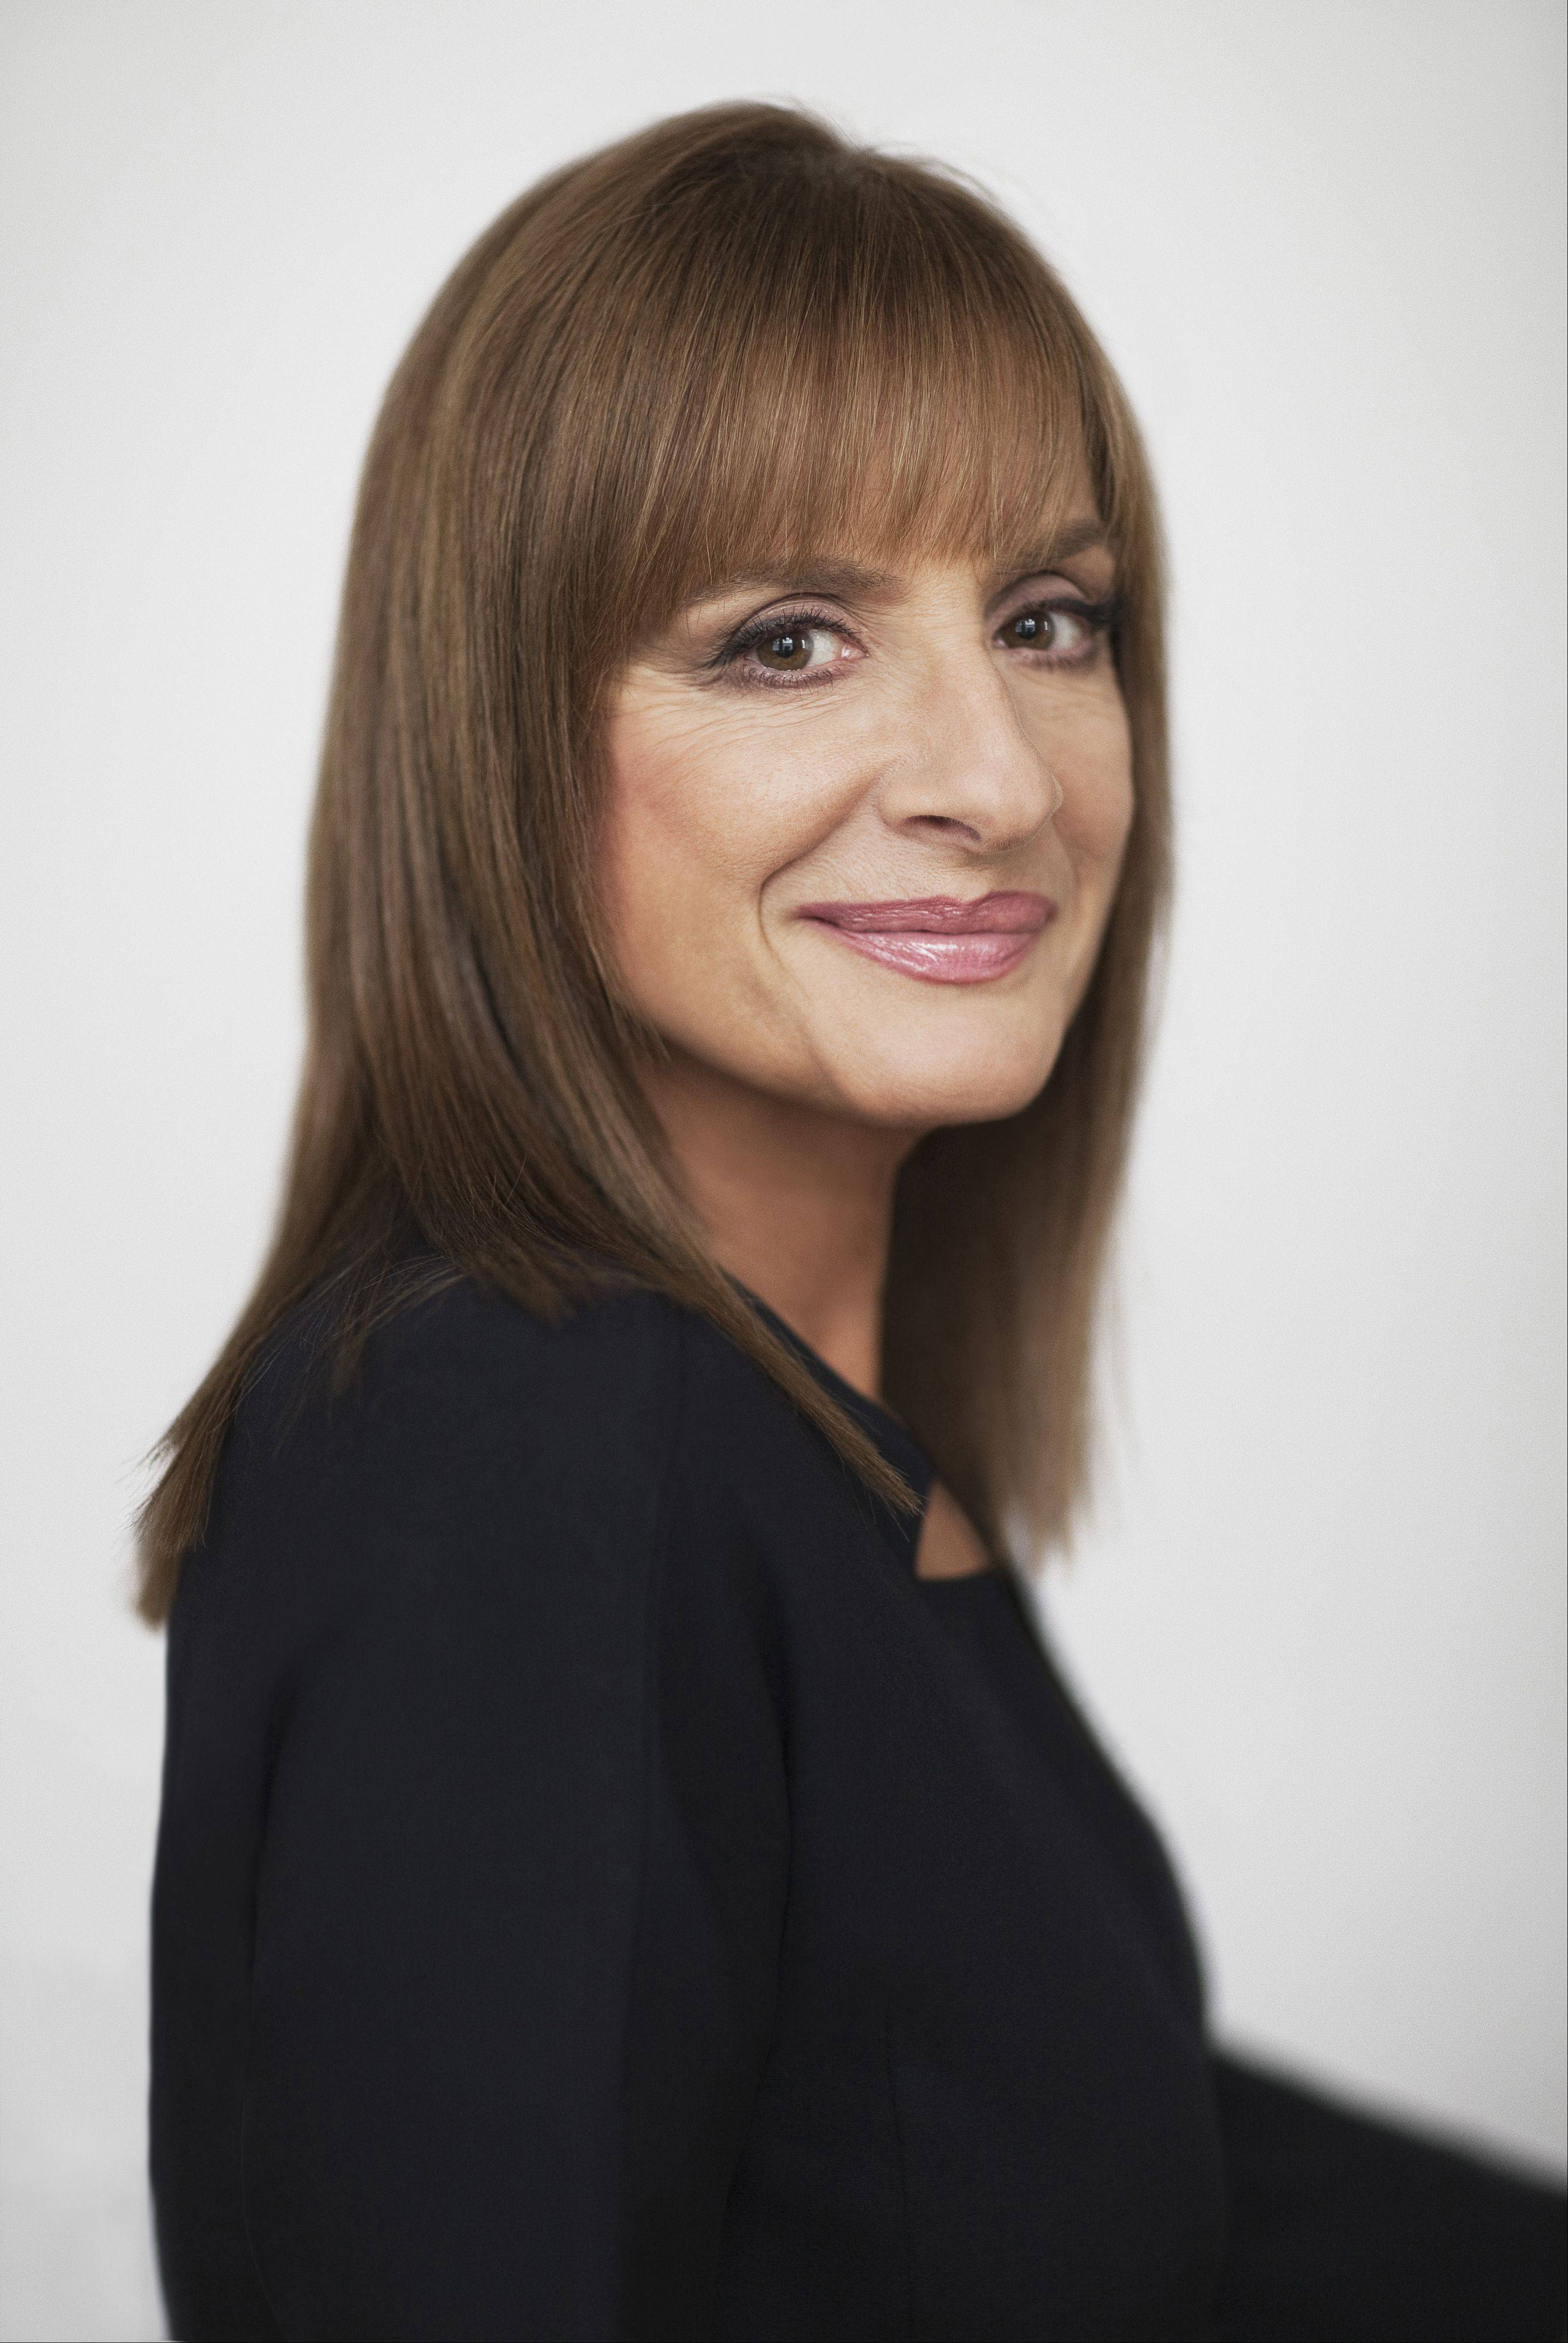 Broadway star Patti LuPone teams with opera soprano Patricia Racette for a Chicago Symphony Orchestra gala benefit concert at the Ravinia Festival in Highland Park on Saturday, July 21.